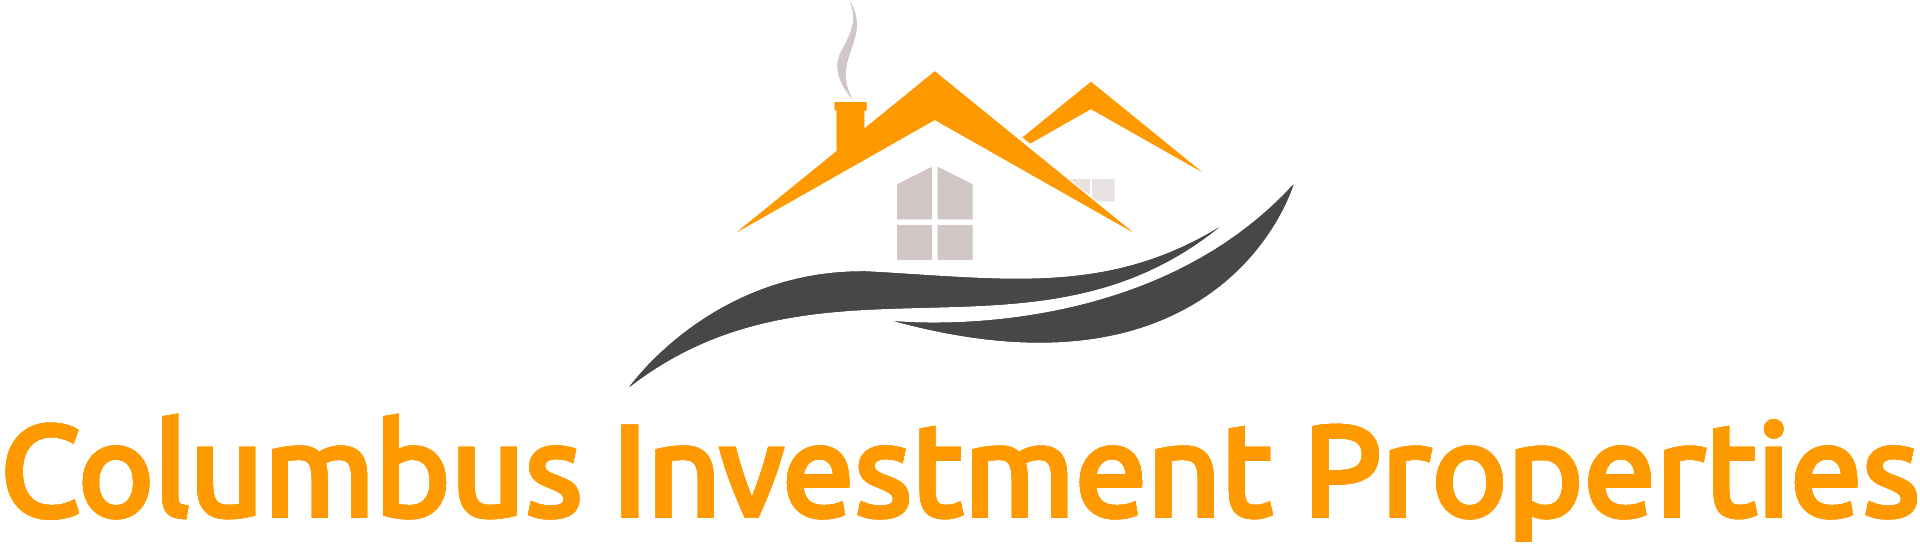 Columbus Investment Properties logo